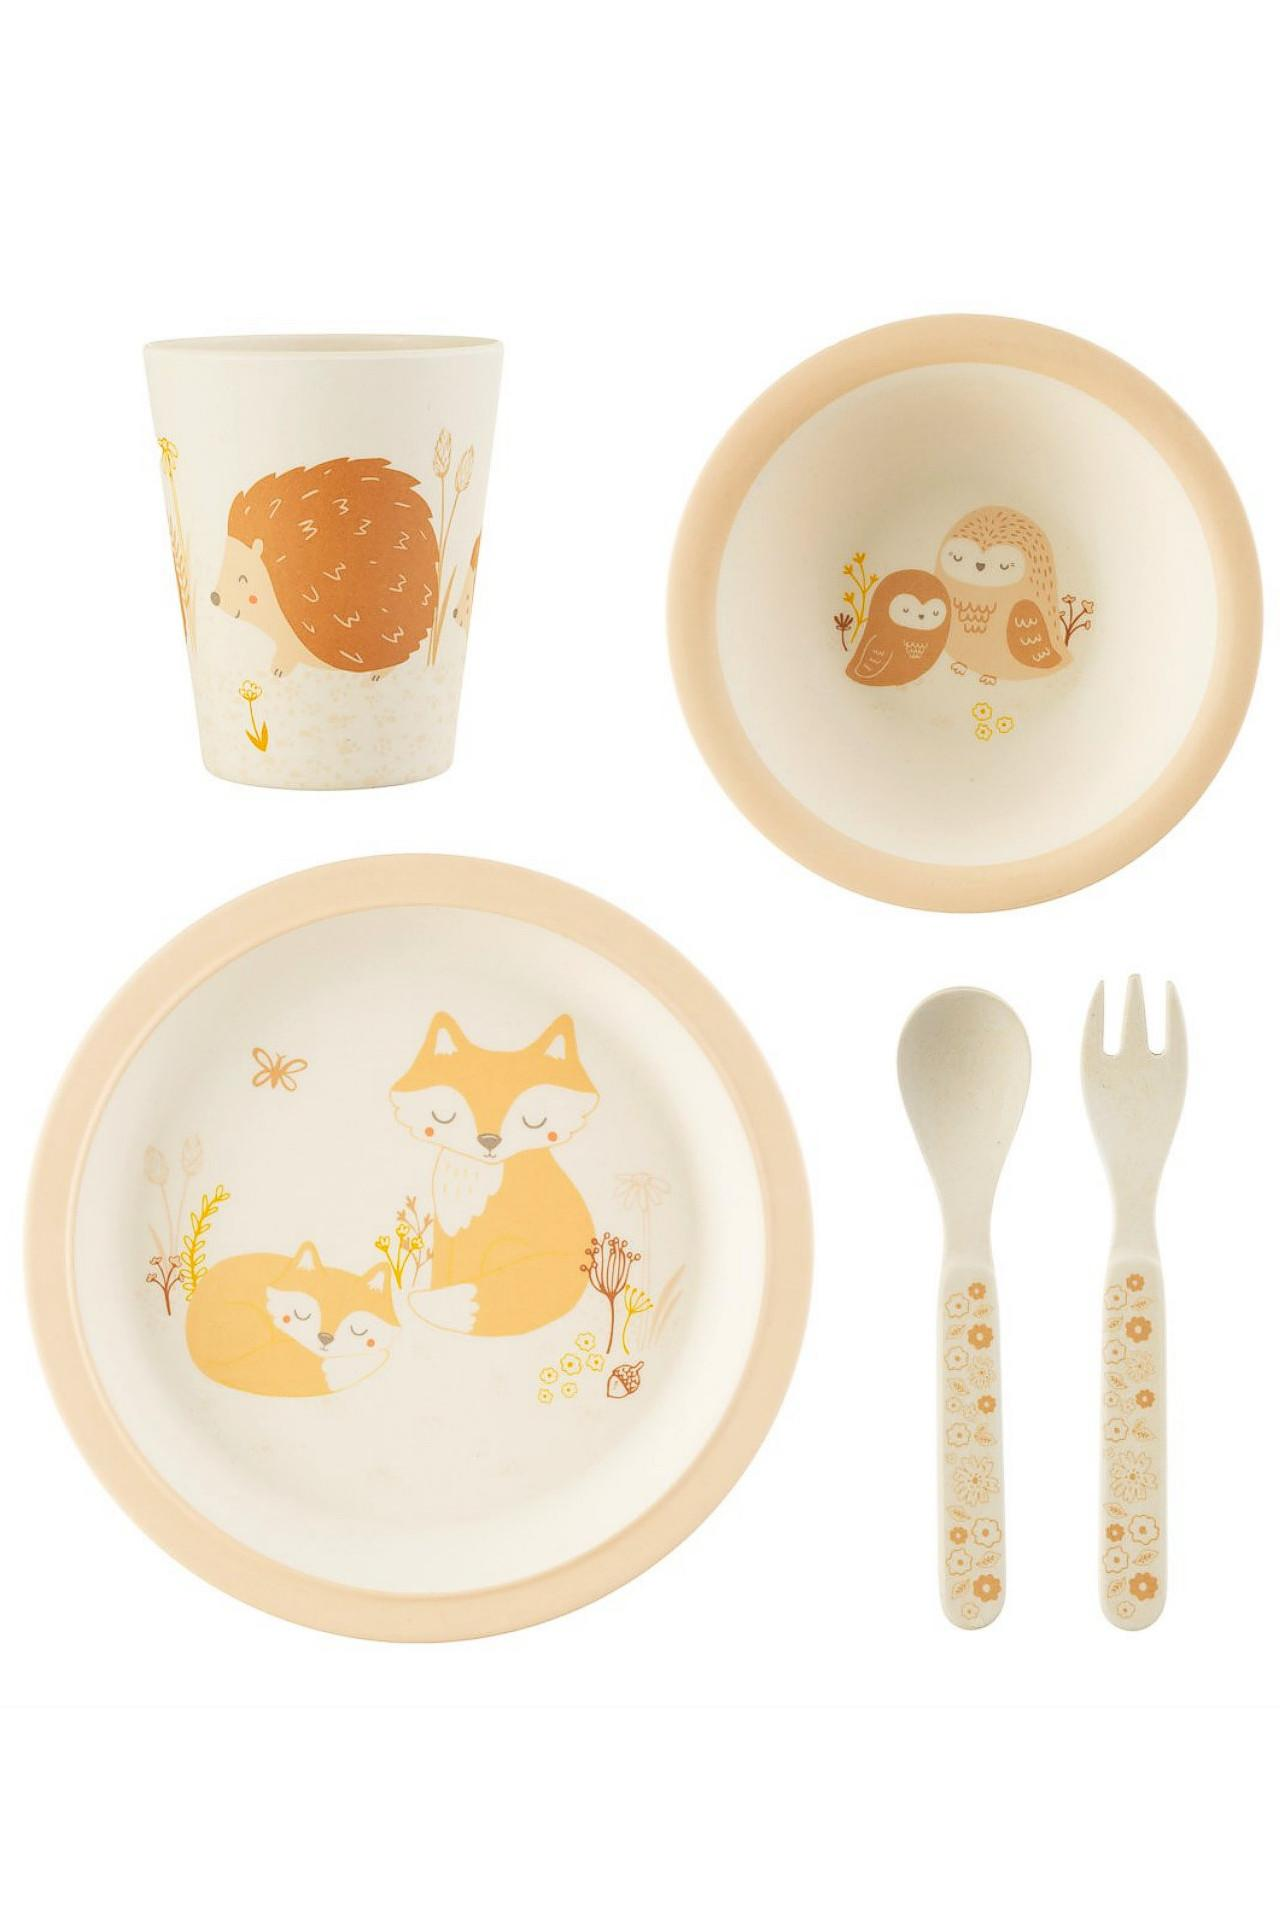 New Woodland Baby Bamboo Tableware Set for Teatime Fun #2